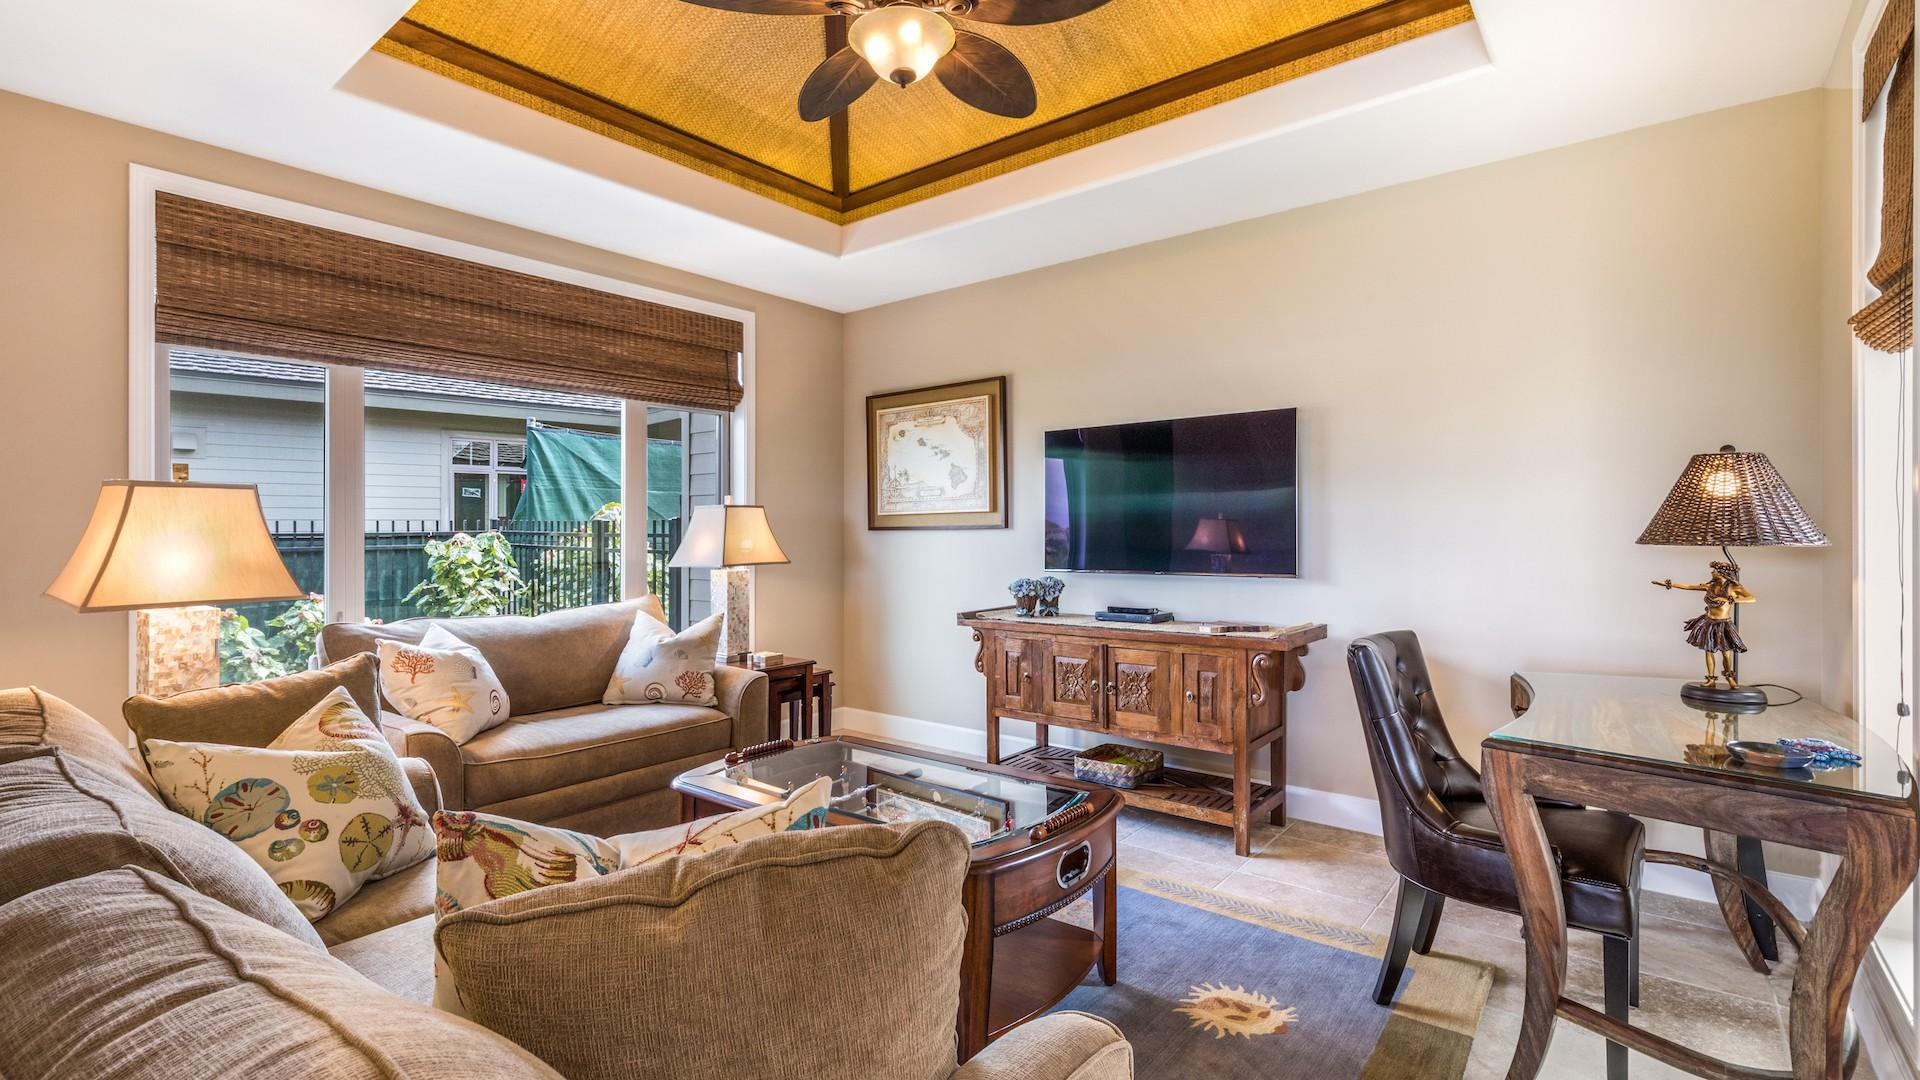 Bonus family room off the kitchen with foosball table, flat-screen TV, and desk area.